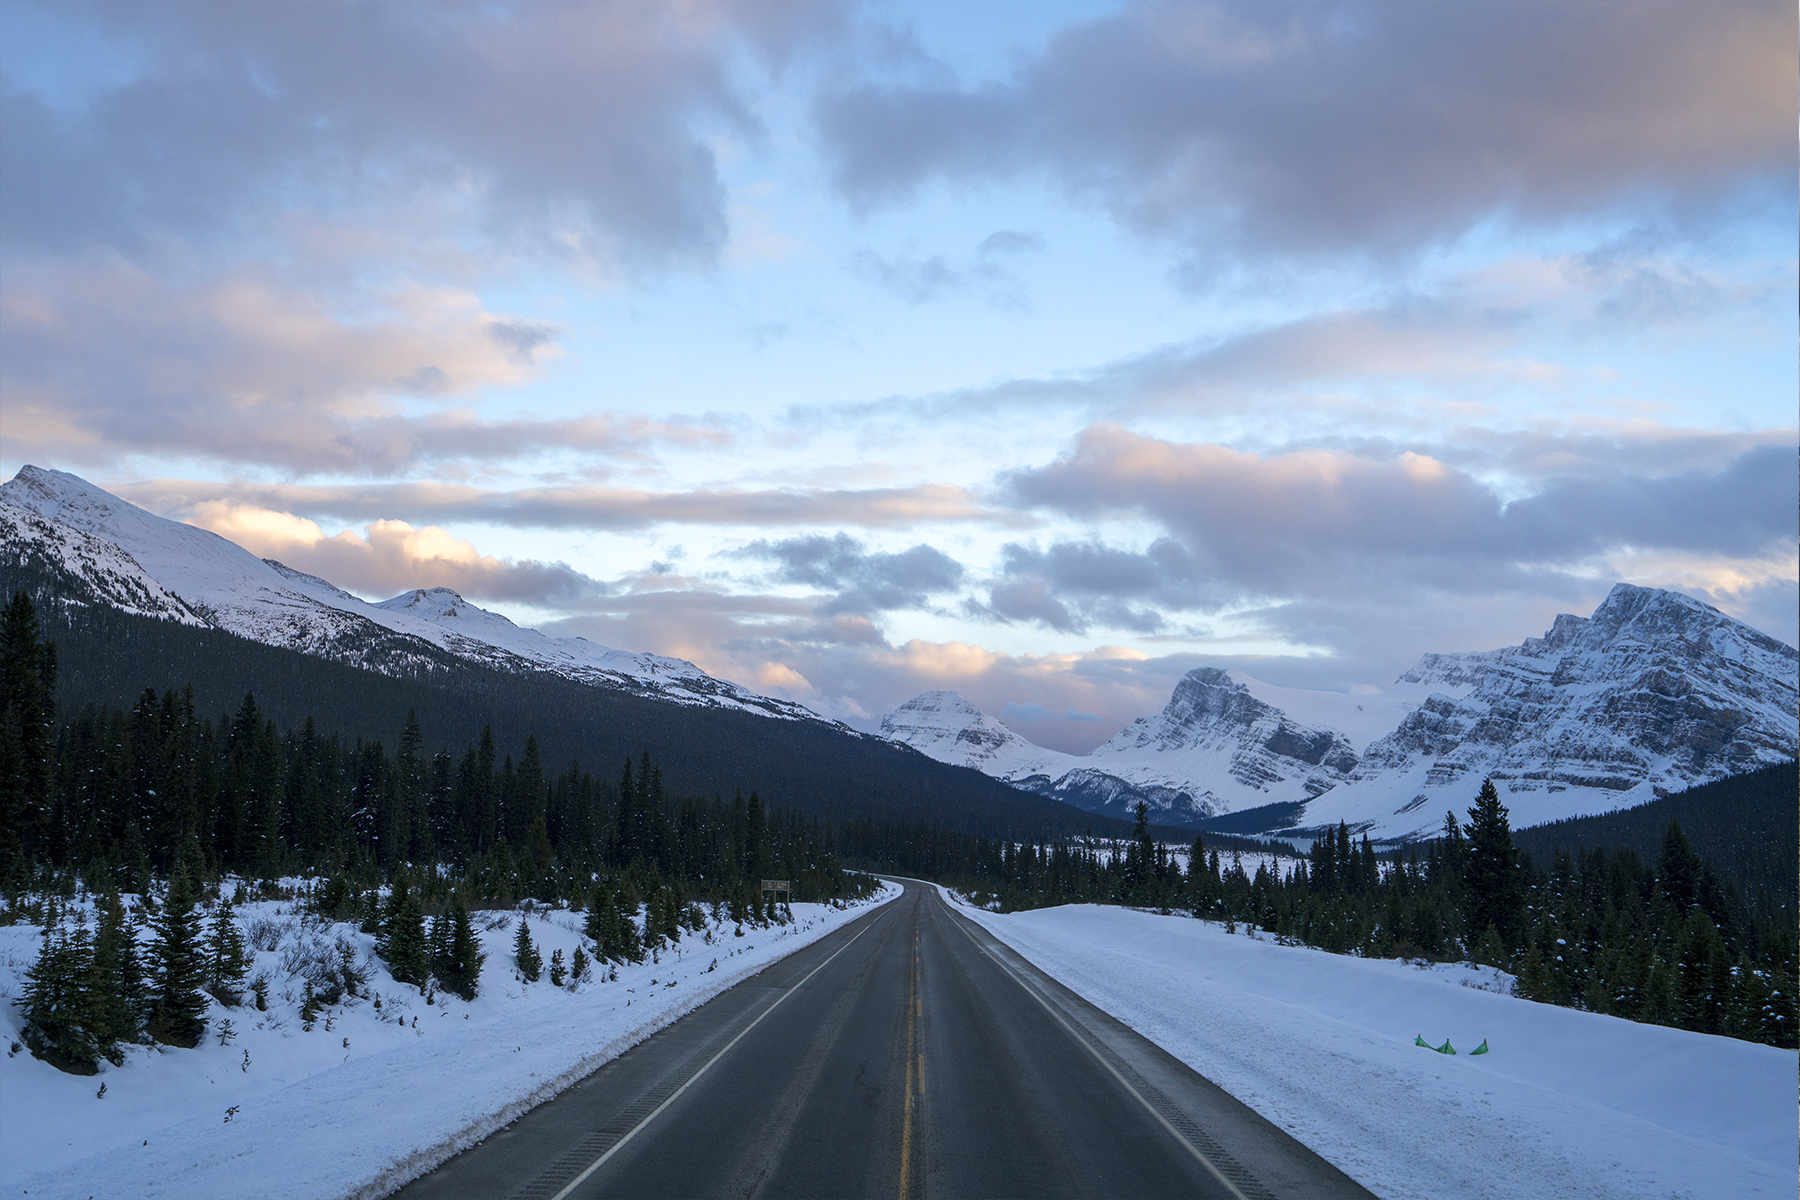 Peyto-lake-icefields-parkway-alberta-canada-que-hacer-2